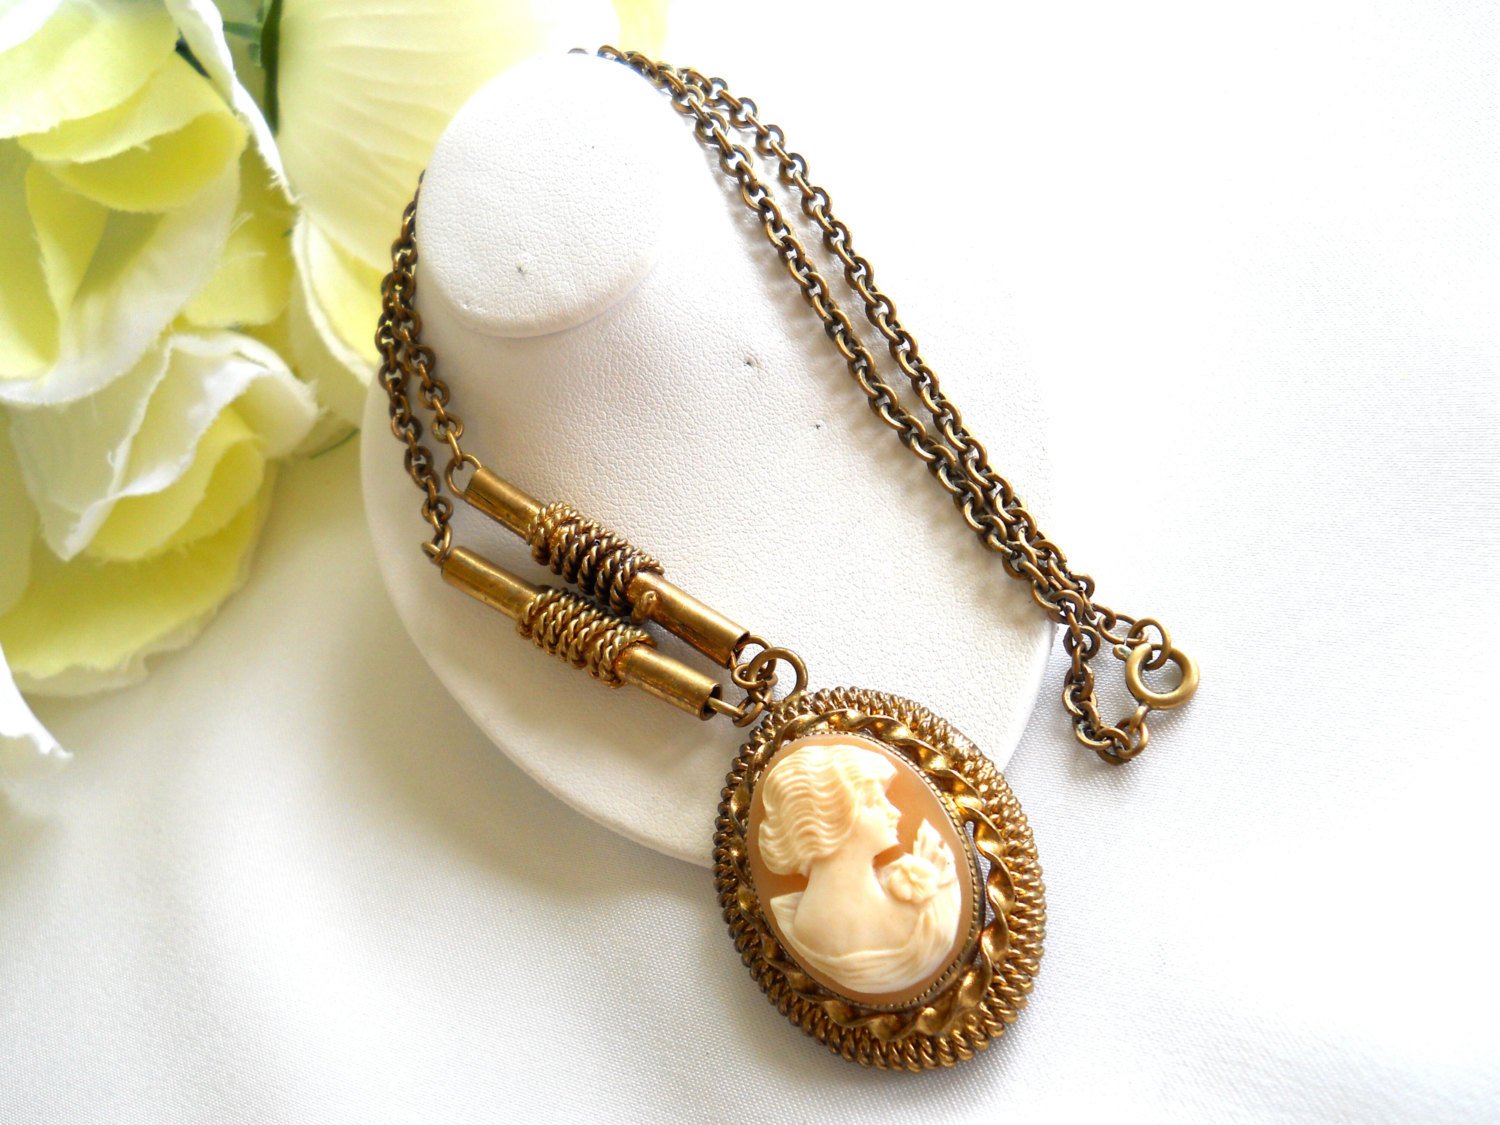 Carved Shell Cameo Pendant Necklace Victorian Style Vintage image 3